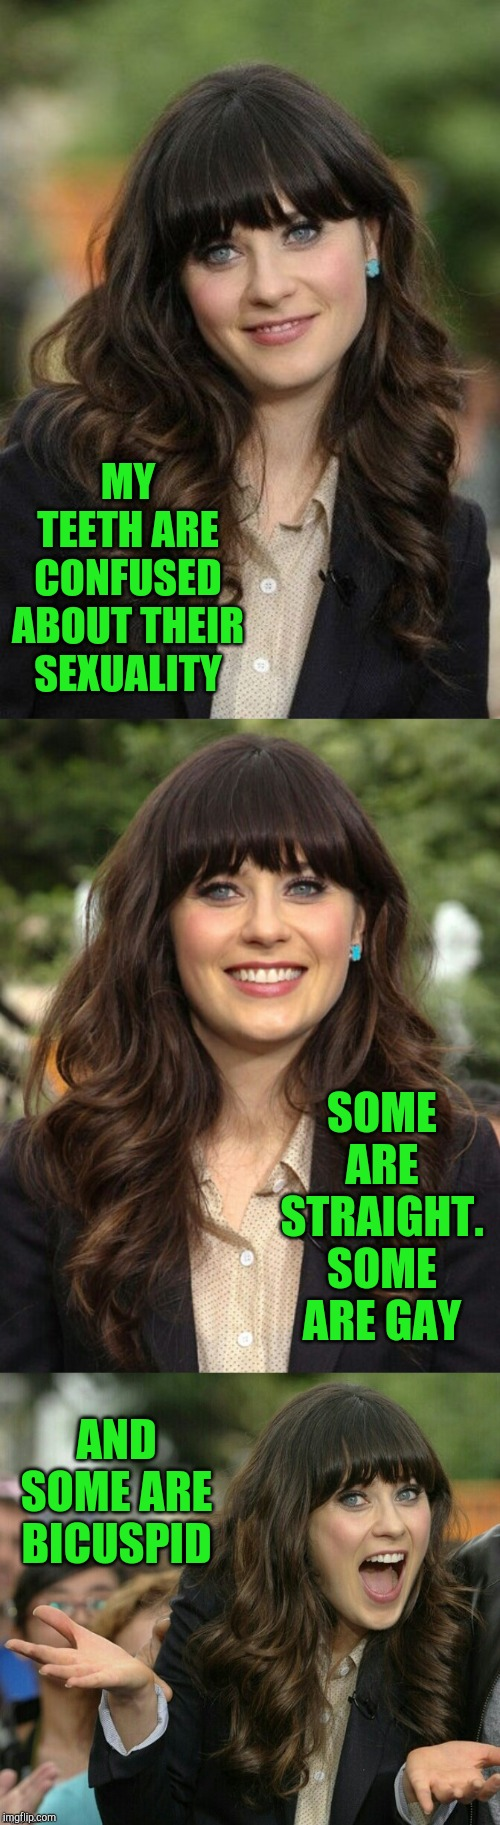 Zooey Deschanel joke template | MY TEETH ARE CONFUSED ABOUT THEIR SEXUALITY SOME ARE STRAIGHT. SOME ARE GAY AND SOME ARE BICUSPID | image tagged in zooey deschanel joke template,jbmemegeek,bad puns,zooey deschanel,gay jokes | made w/ Imgflip meme maker